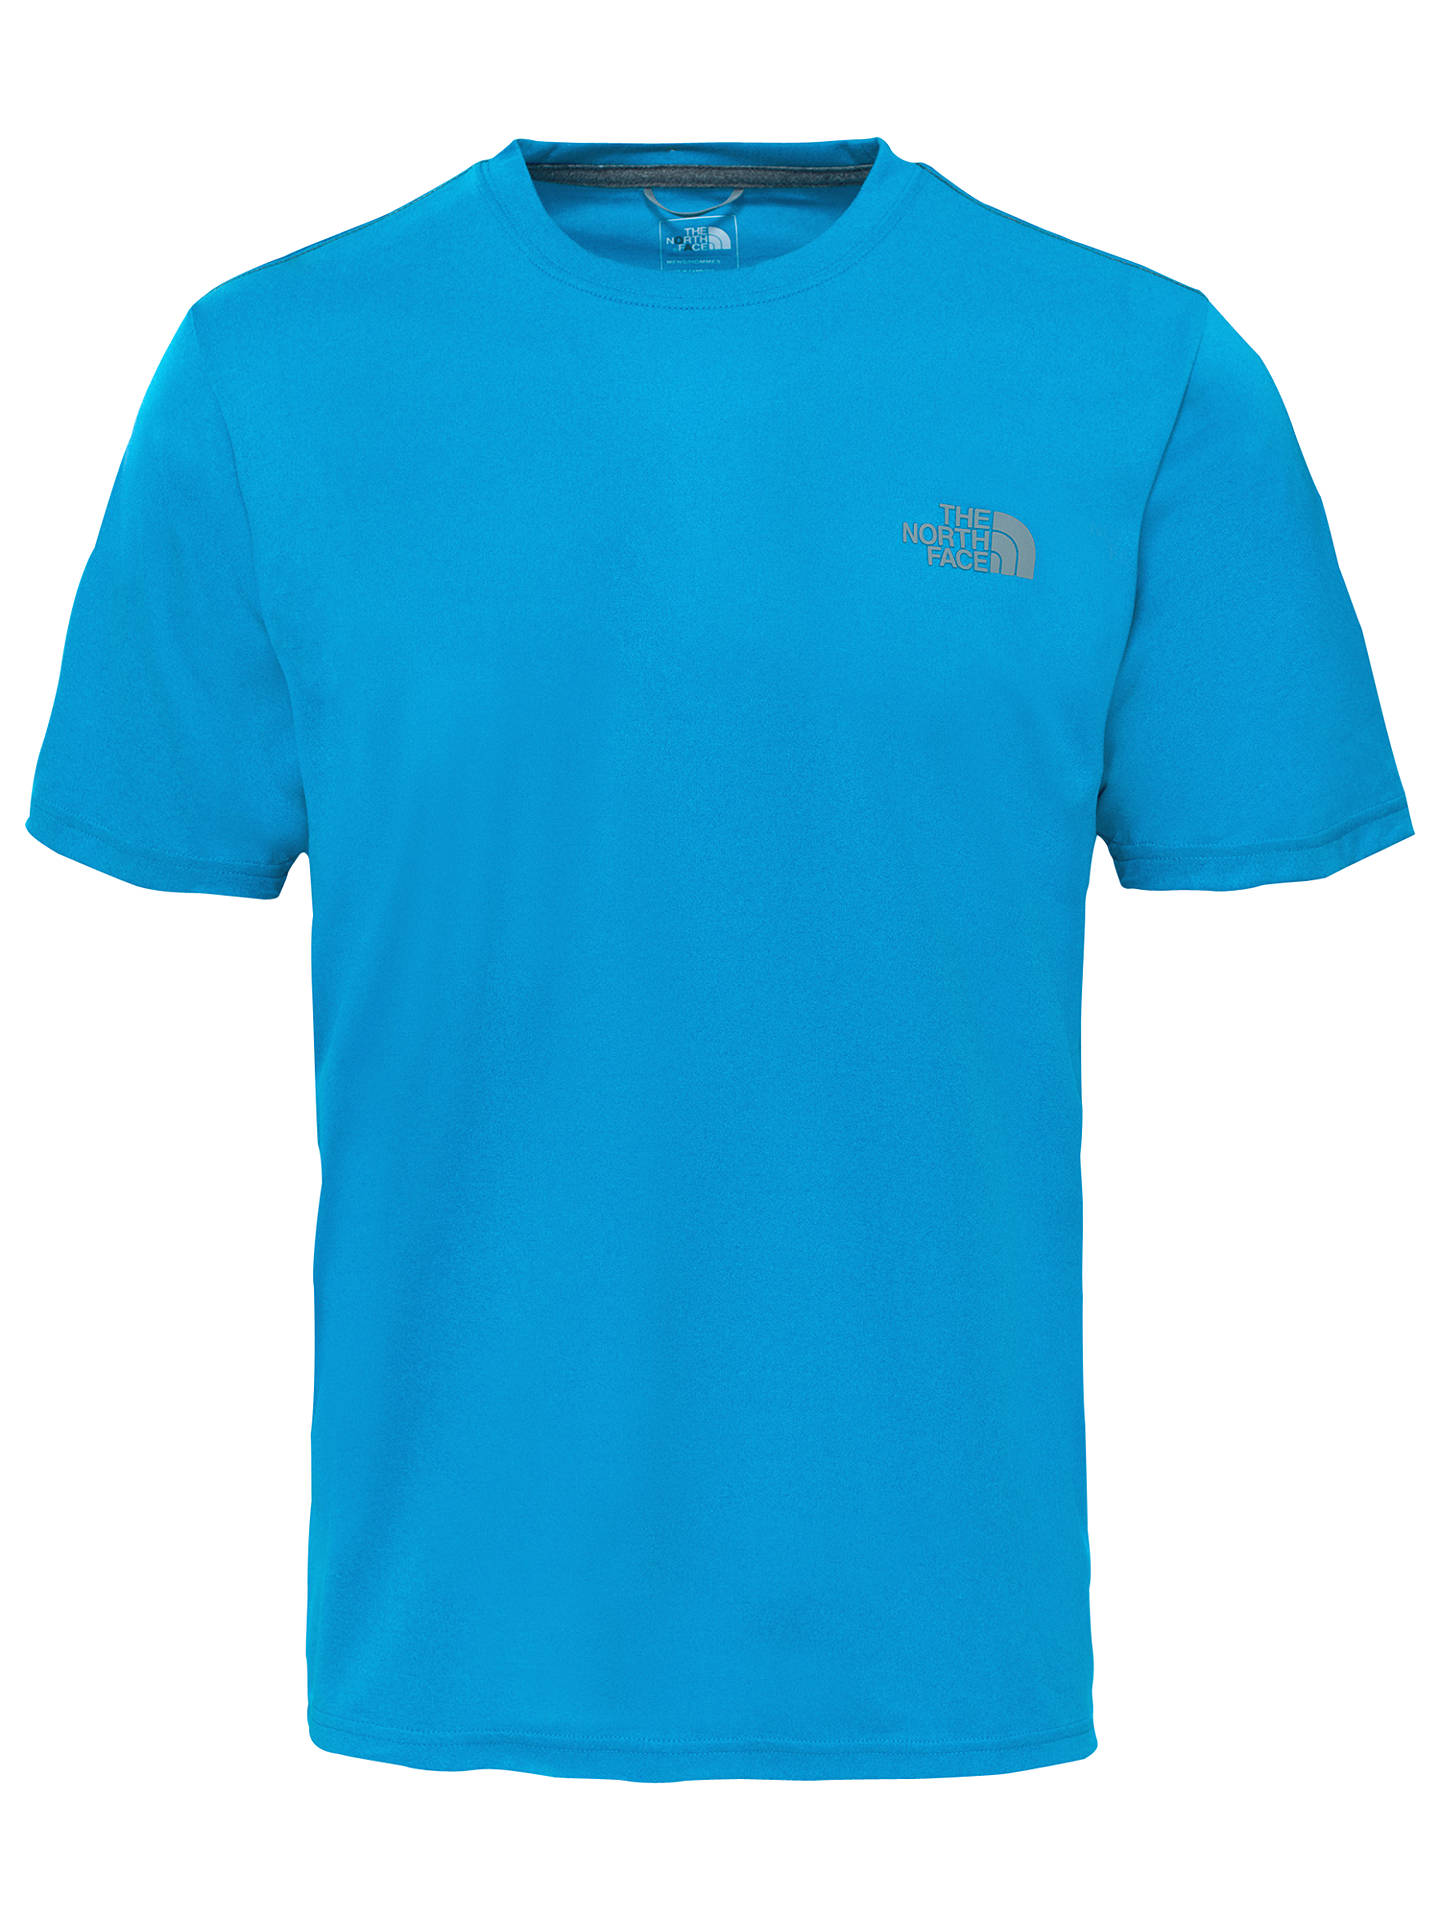 b0383ed60851 The North Face Reaxion Amp Crew Neck Training T-Shirt, Blue at John ...